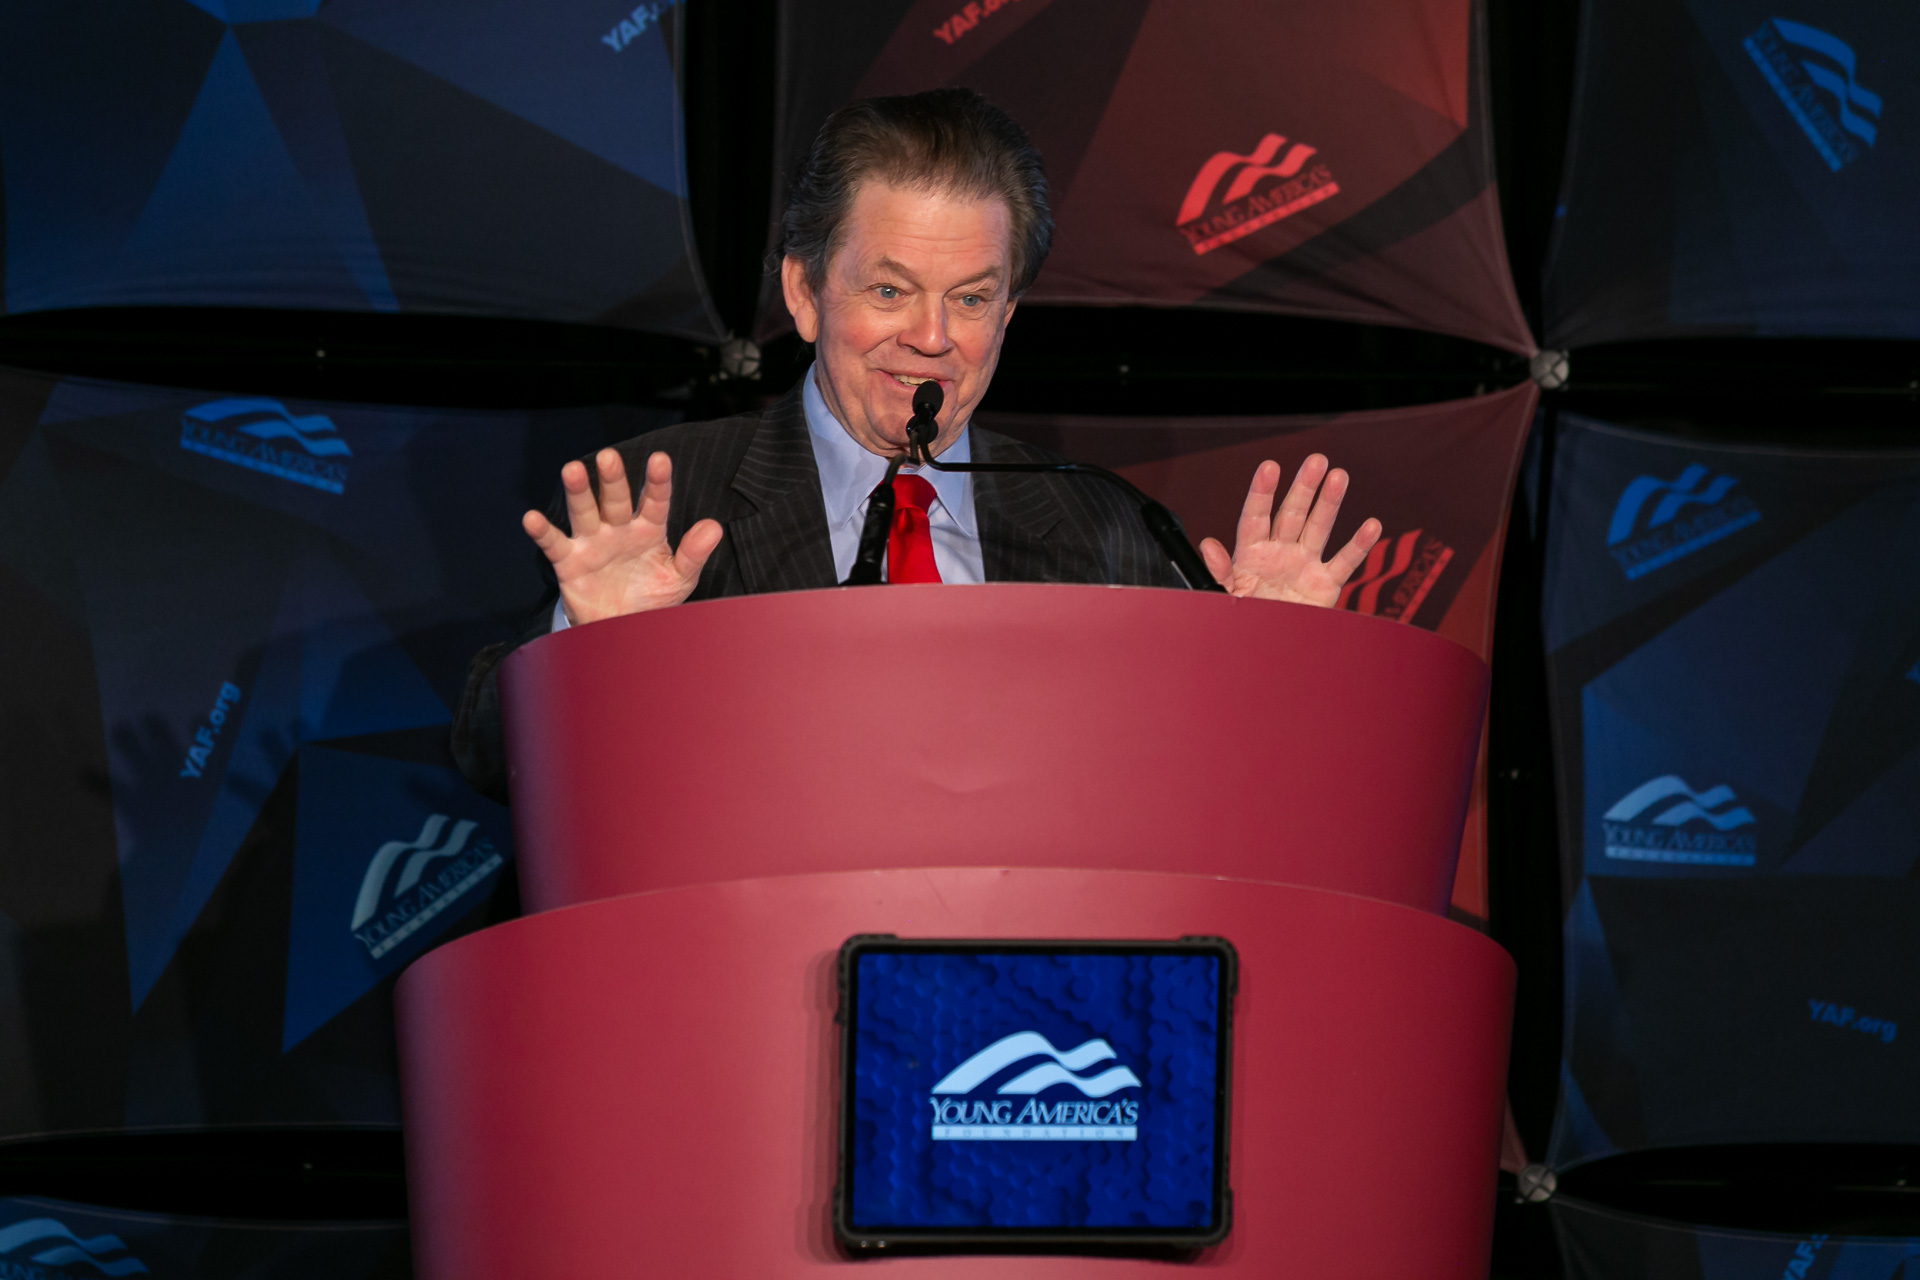 <h1><strong>Free Markets Lead to More Freedom featuring Dr. Arthur Laffer at the Miami Freedom Conference</strong></h1>